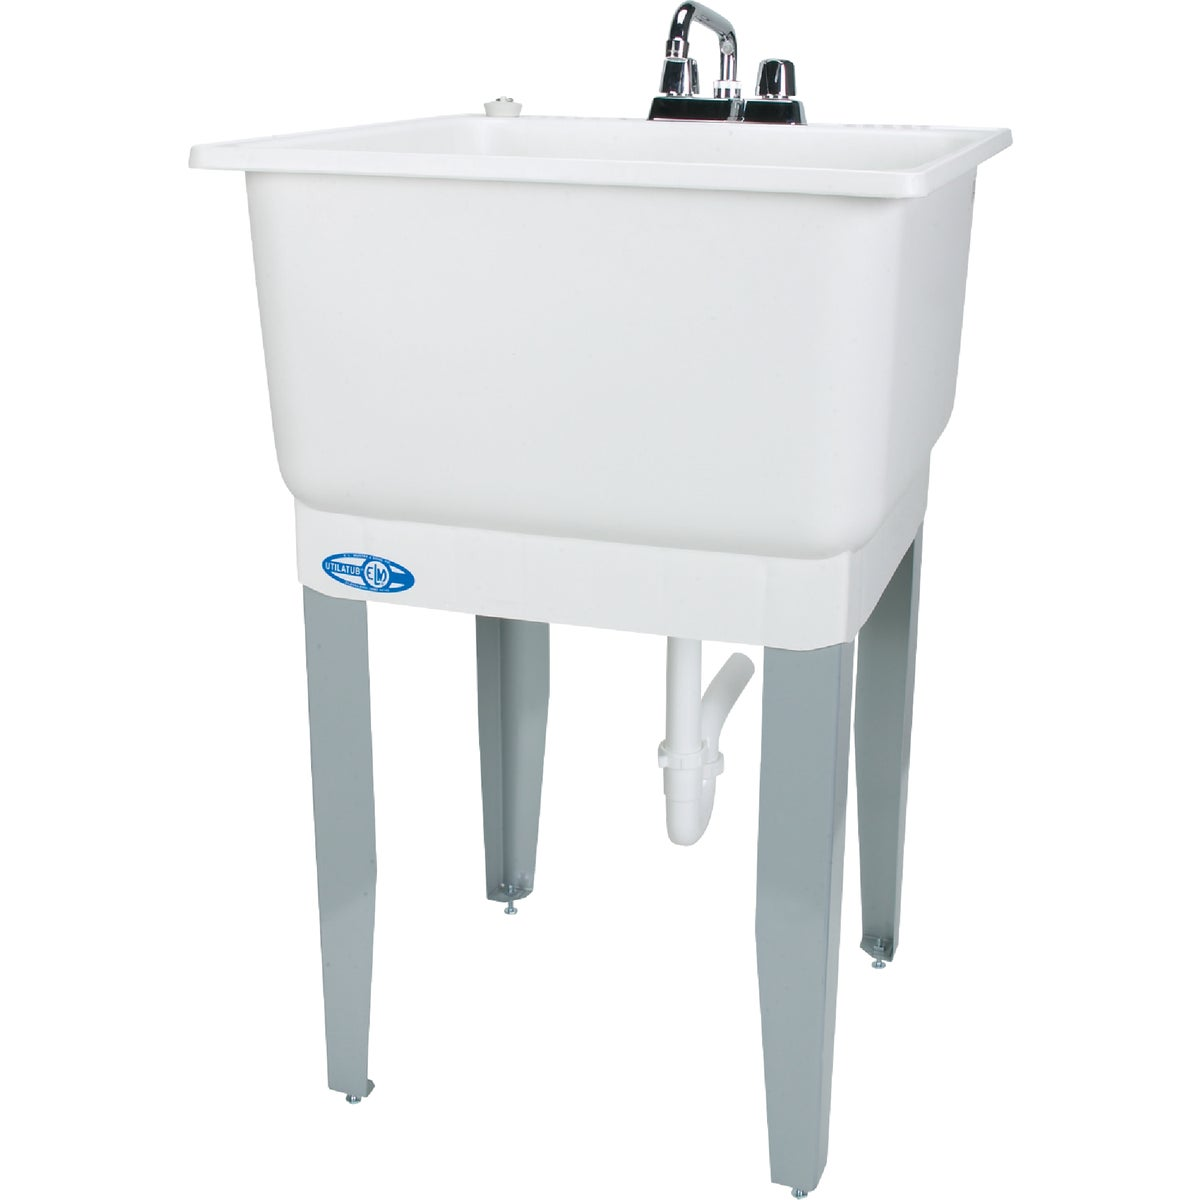 COMBO LAUNDRY TUB - 14CP by E L Mustee